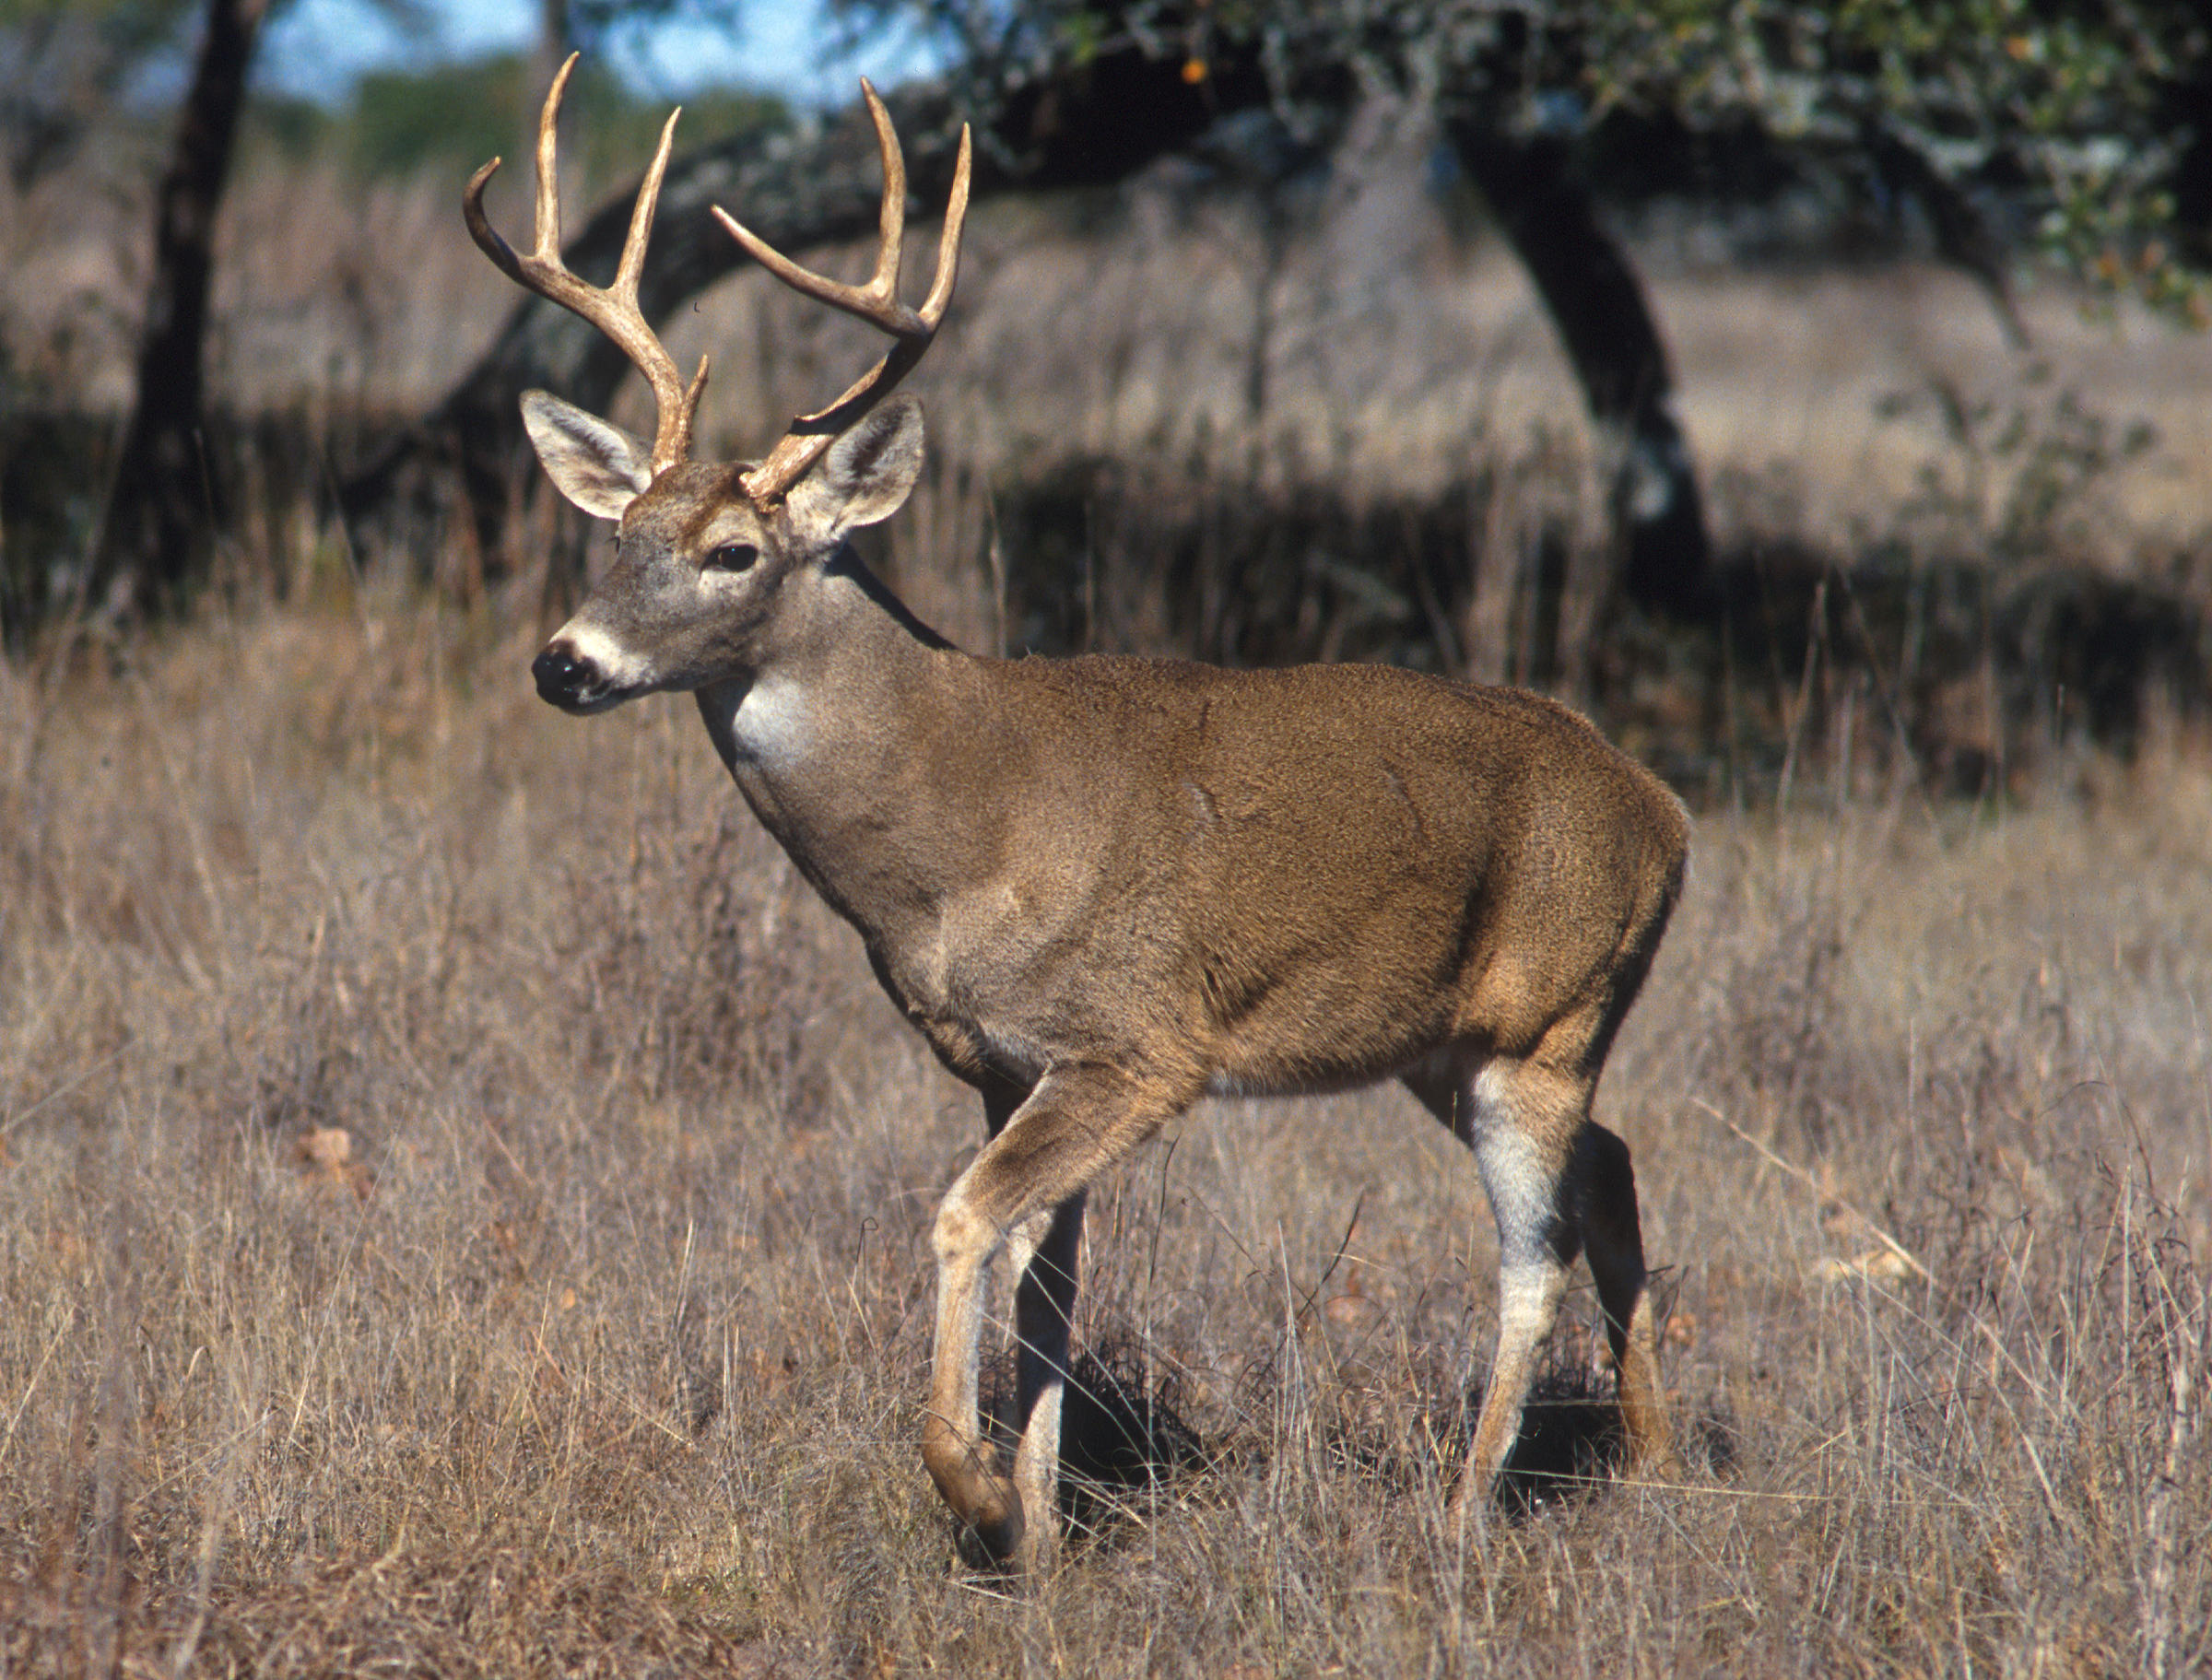 Hunters Need to Know about Infected Deer